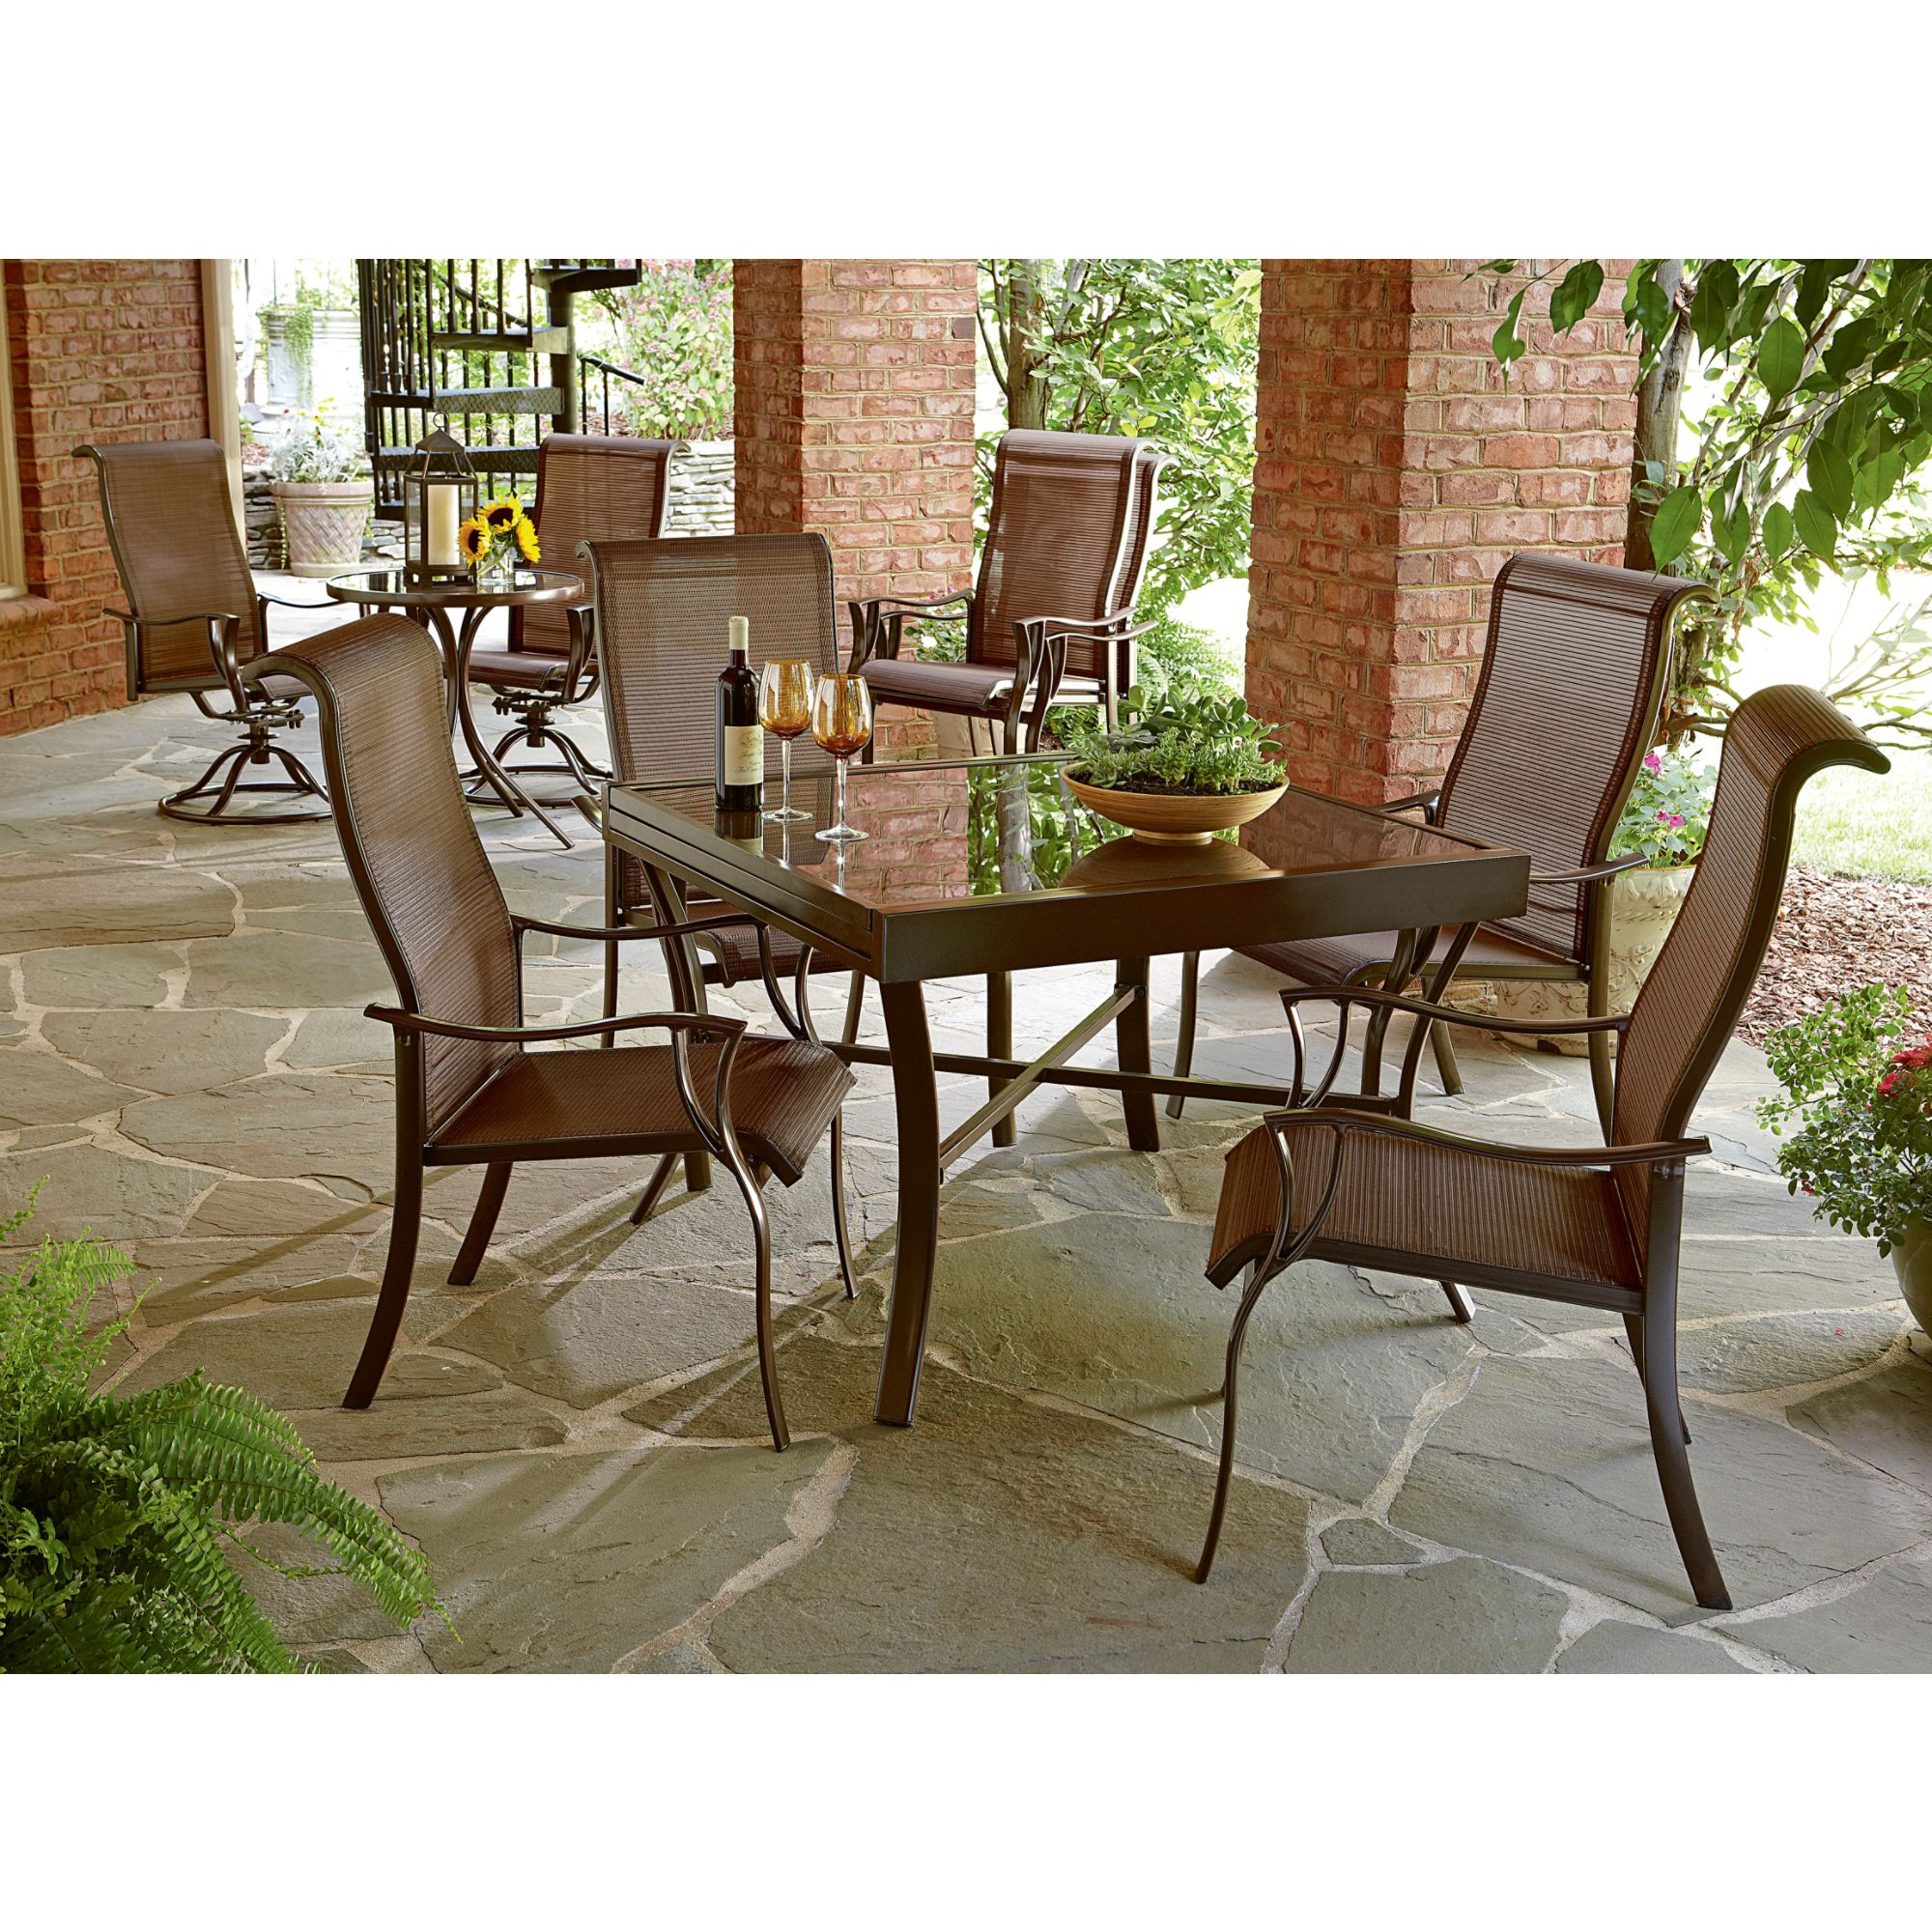 La-Z-Boy Outdoor Tristan 10 Pc. Dining Set with Expanding Table *Limited Availability